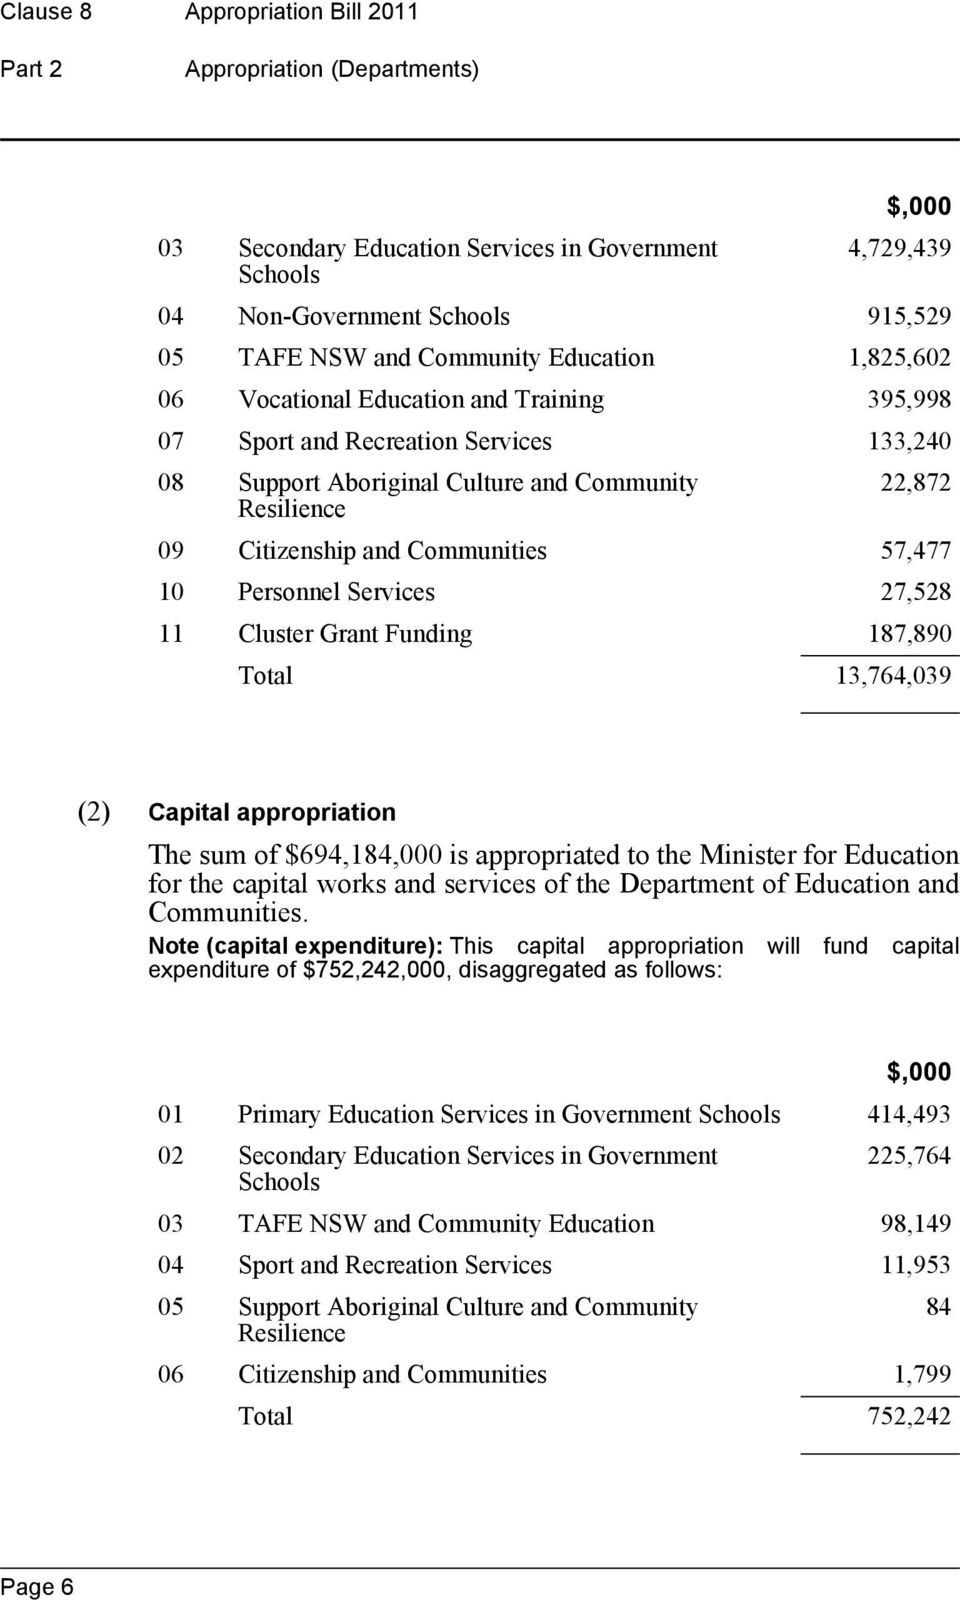 27,528 11 Cluster Grant Funding 187,890 Total 13,764,039 The sum of $694,184,000 is appropriated to the Minister for Education for the capital works and services of the Department of Education and